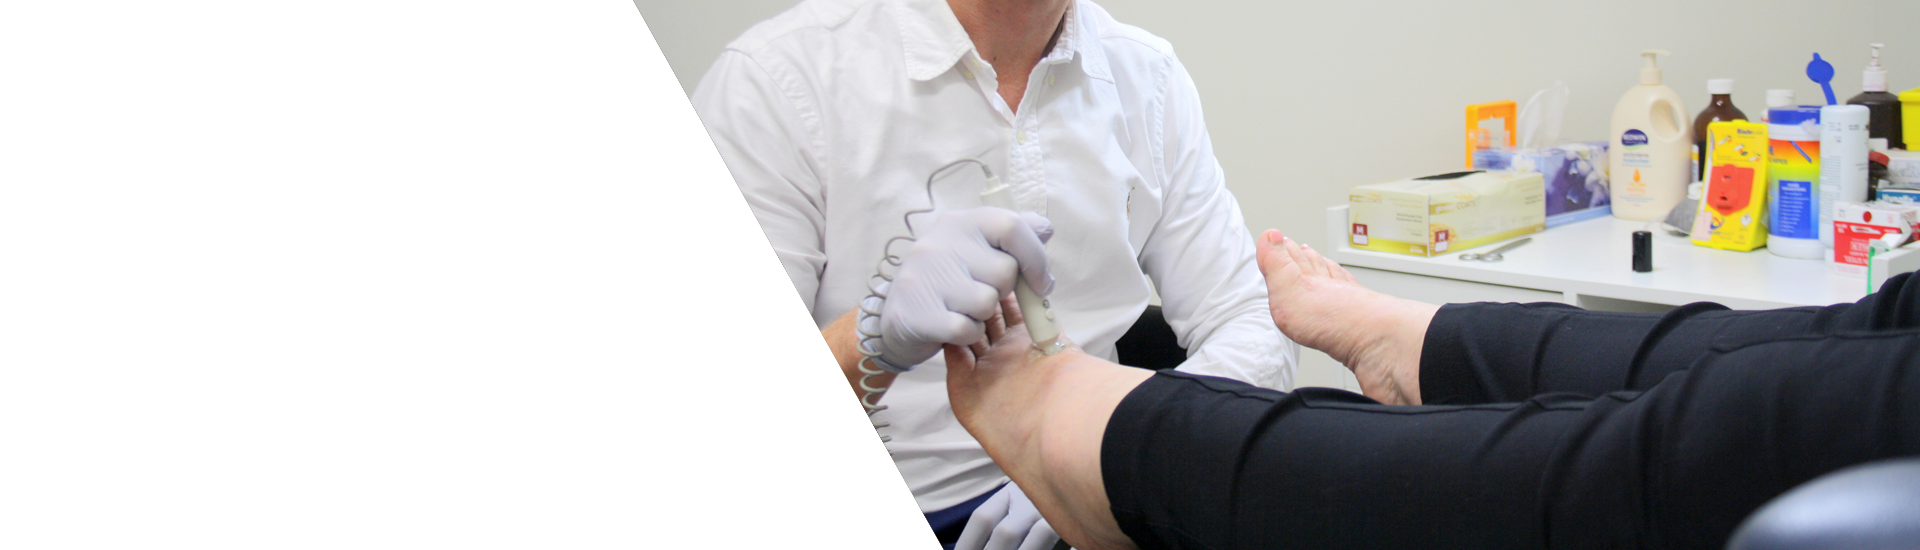 banner-services-podiatry-3